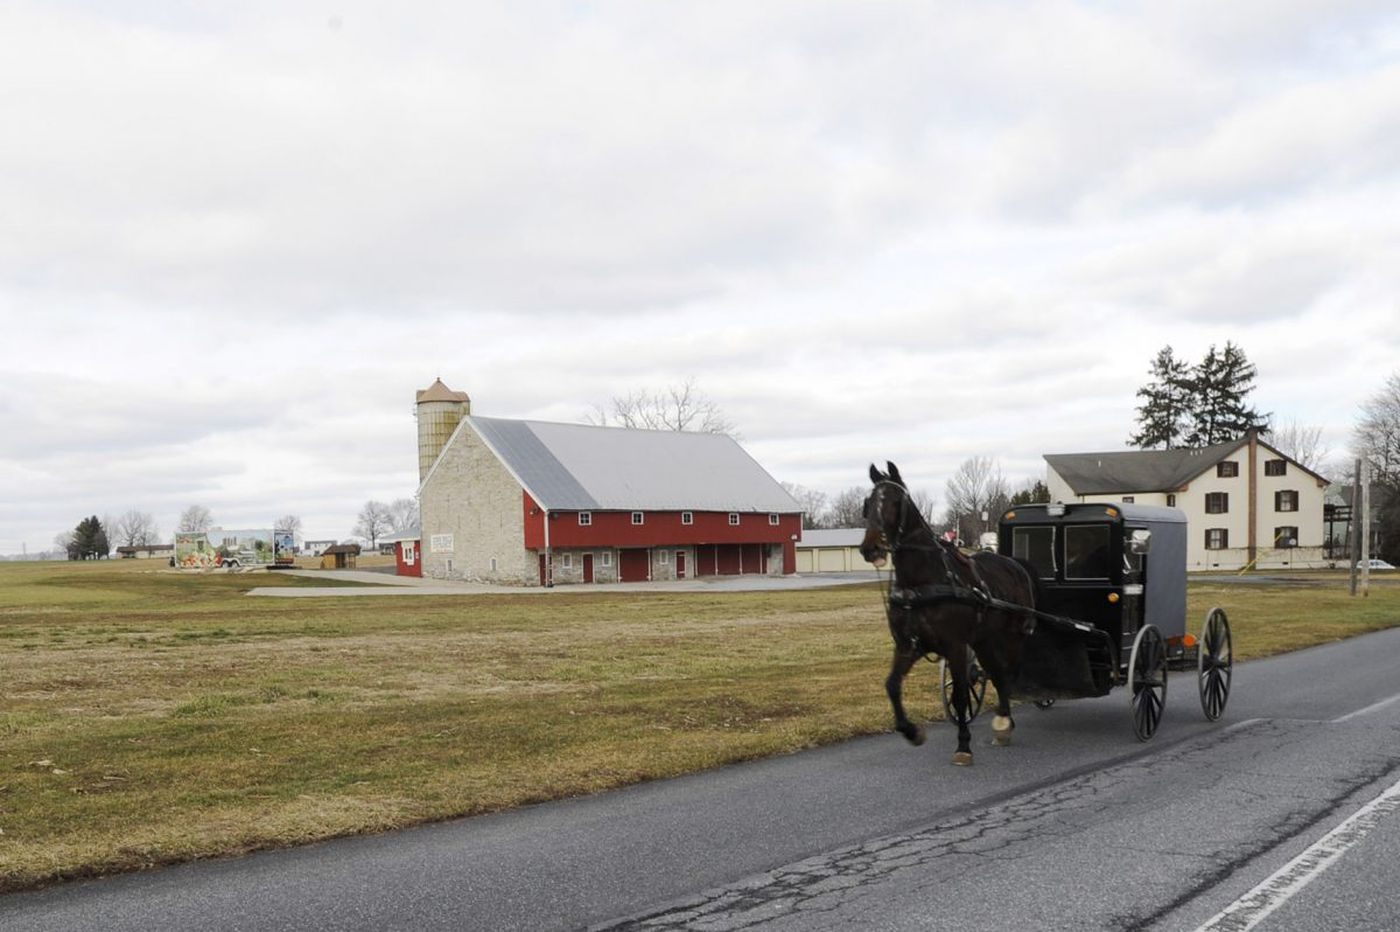 A 'small city' in farm country: Amish and Mennonite farmers question proposed development